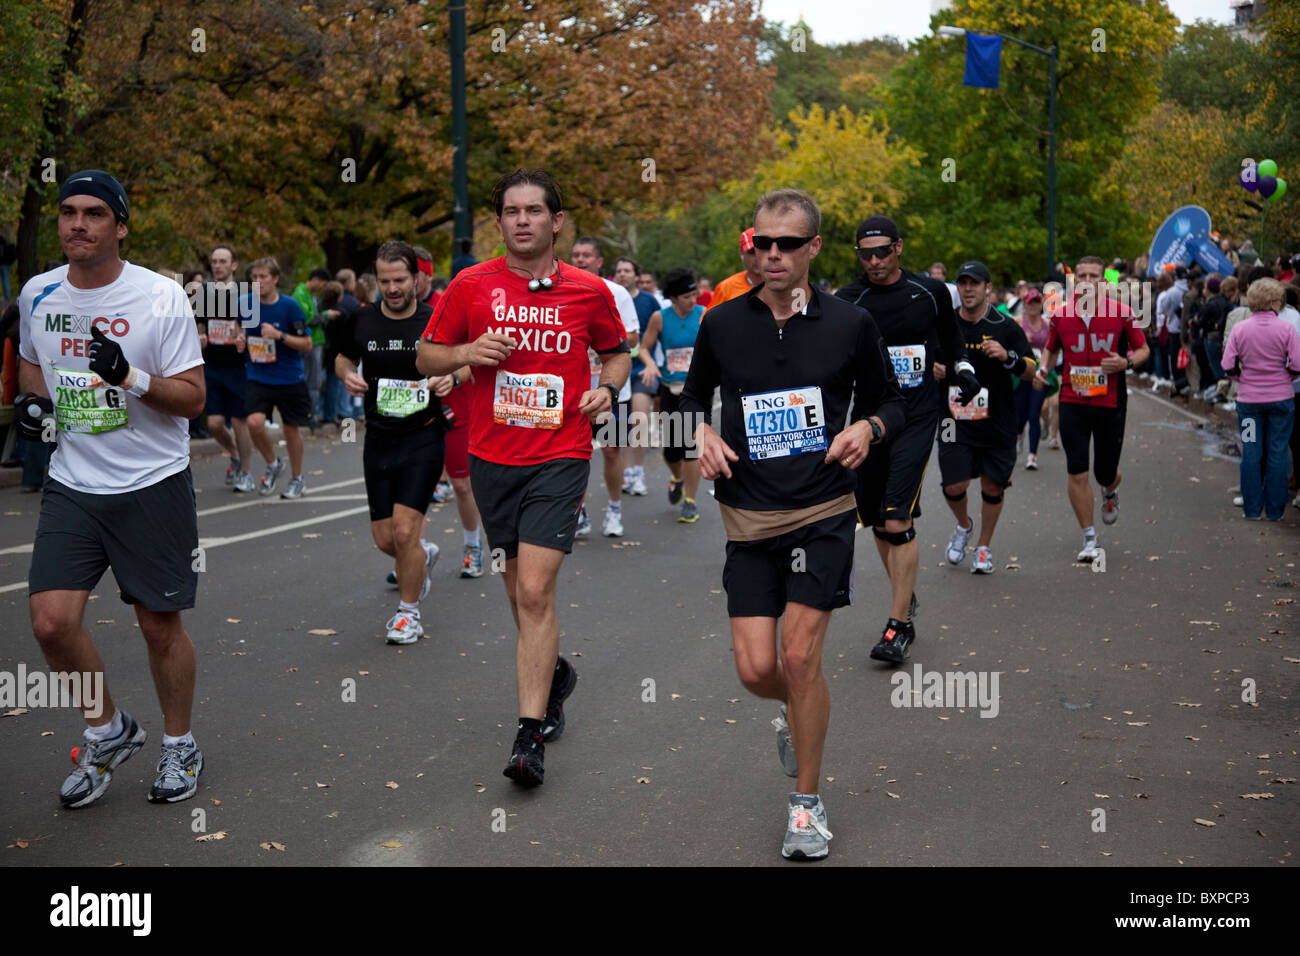 Runners competing in Central Park during 2009 New York City Marathon - Stock Image